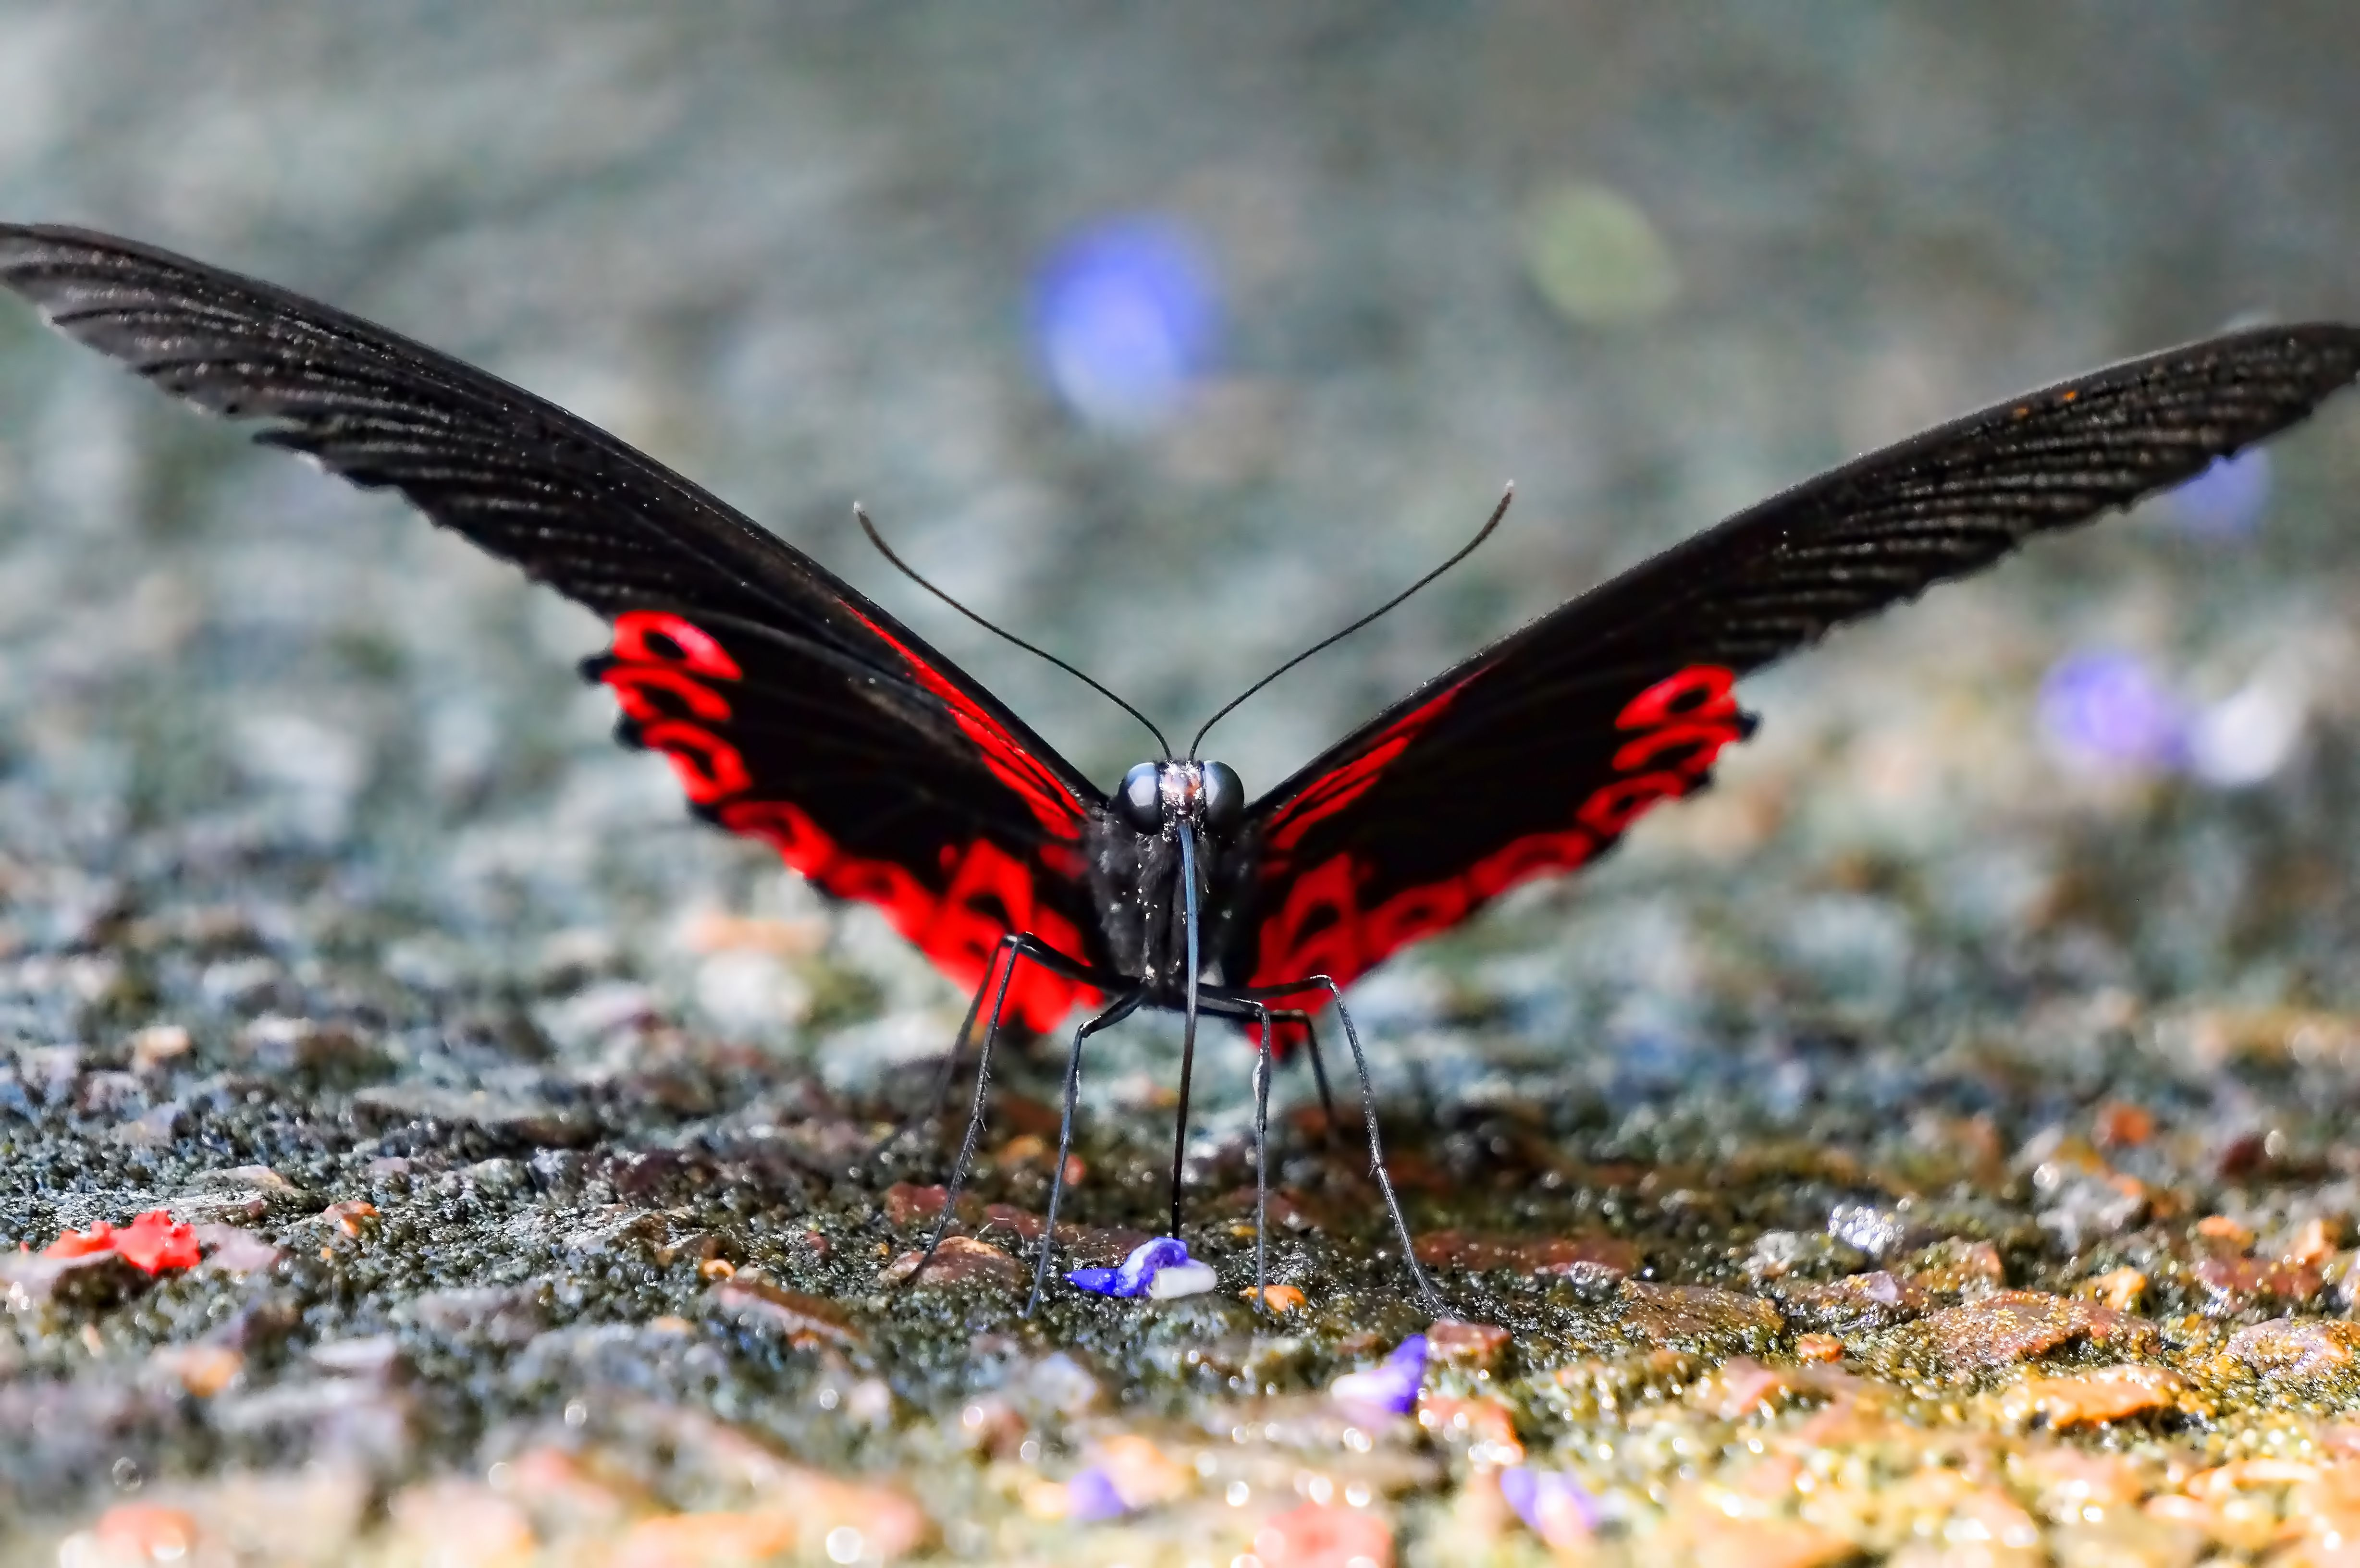 Butterfly Insect photography, Animals, Insects